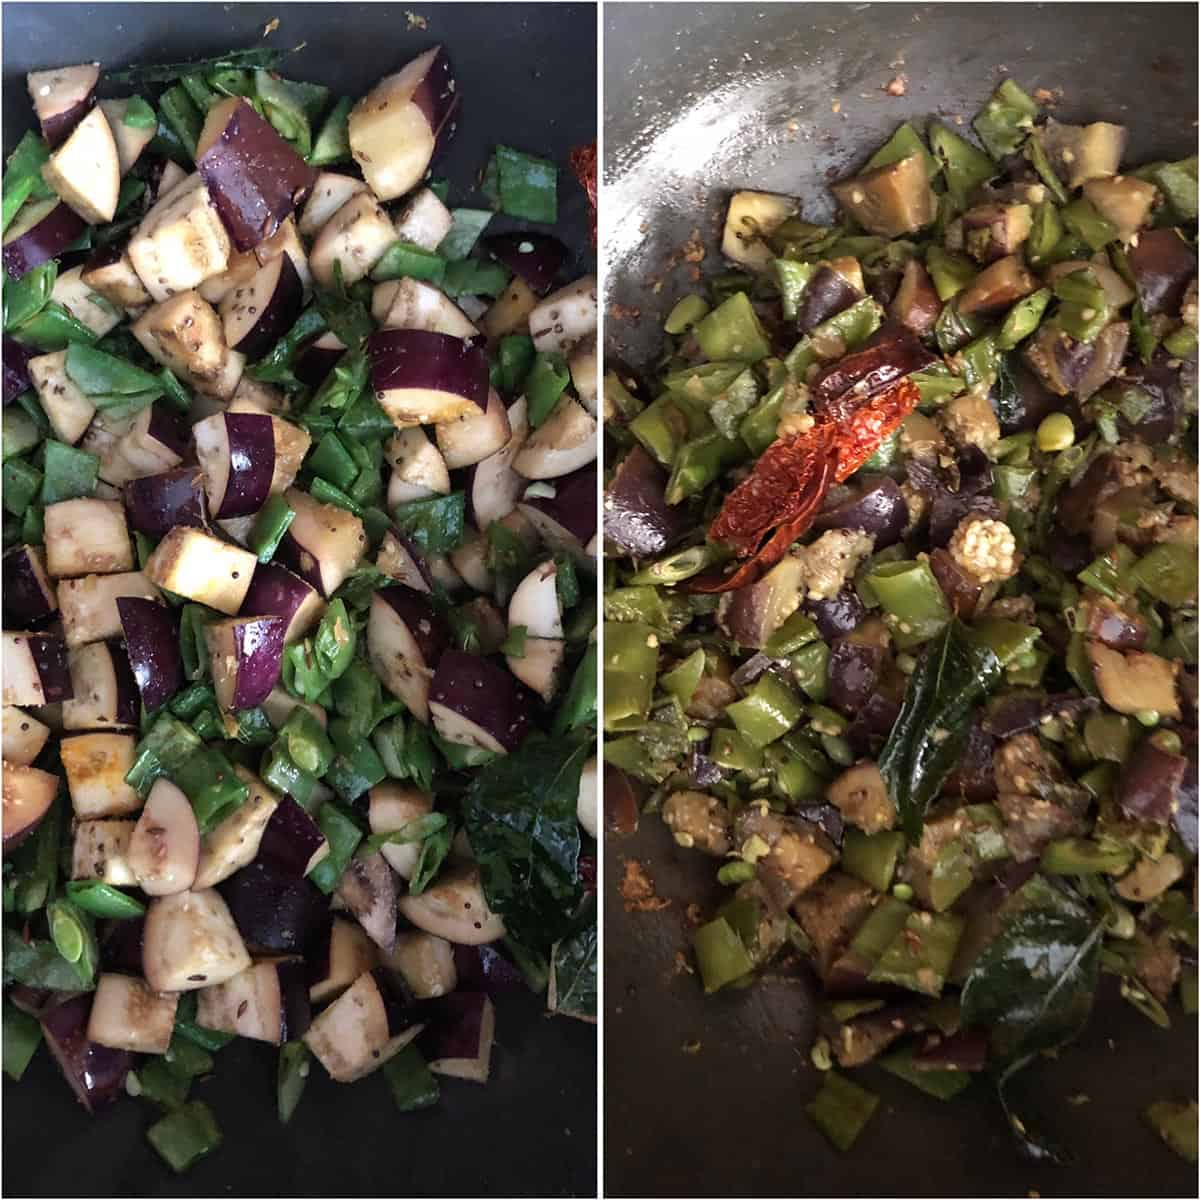 Side by side photos of veggies being cooked